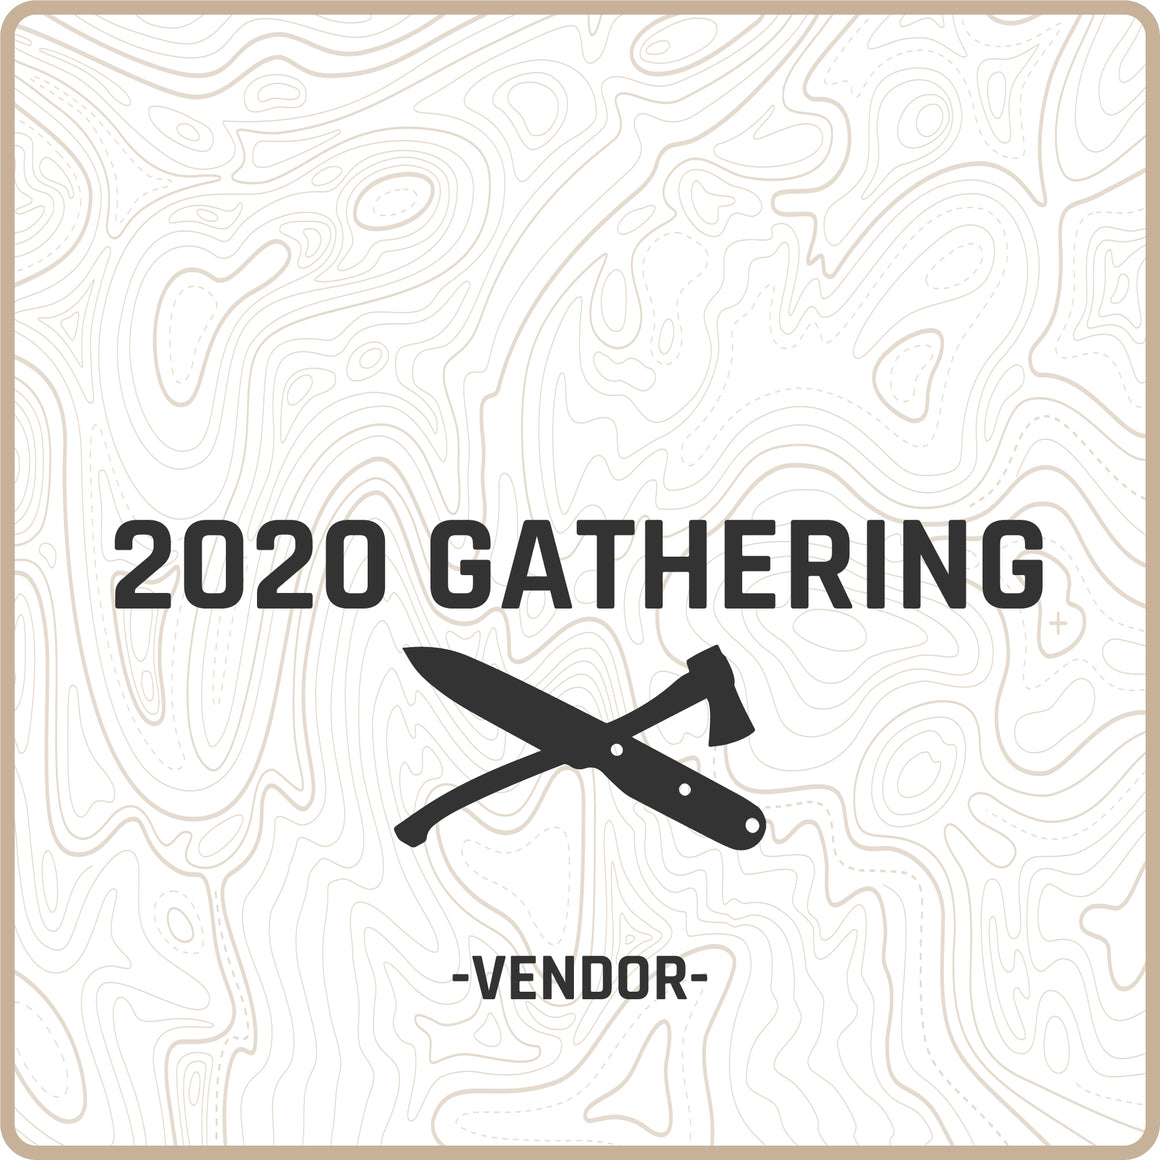 2020 Bushcraft Gathering Vendor (Rescheduled for November 6-8, 2020)